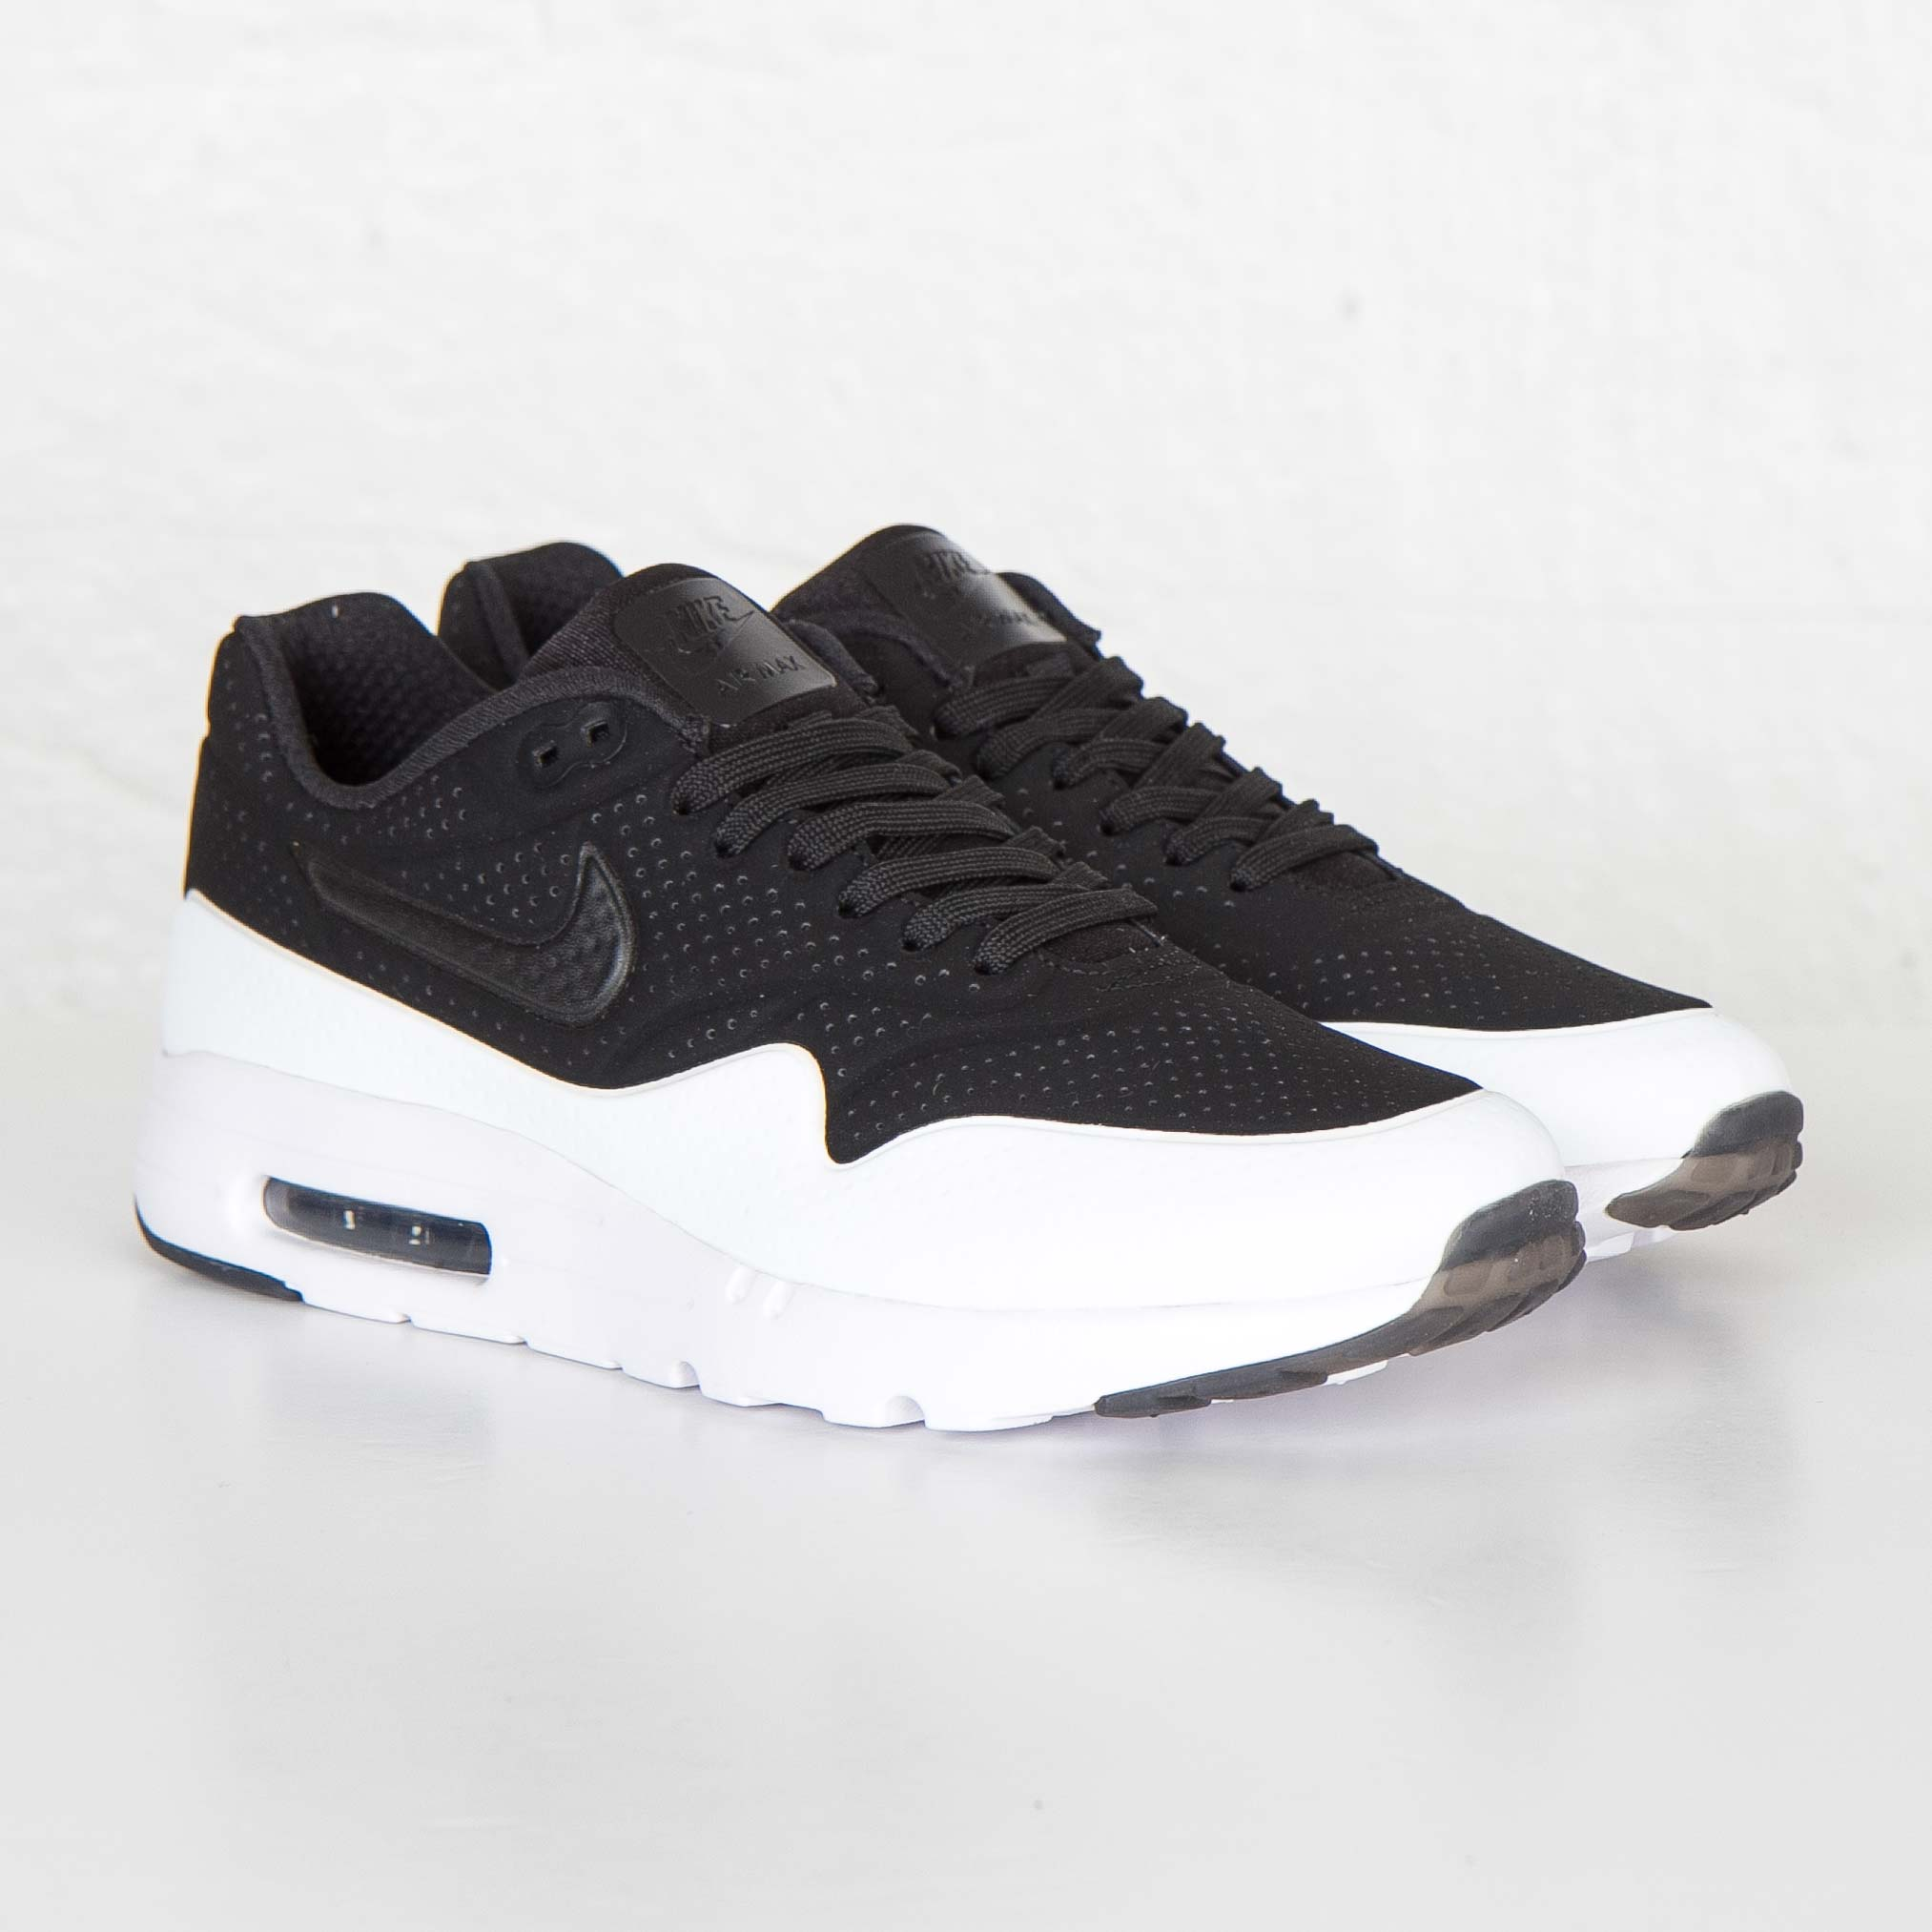 Nike Air Max 1 Ultra Moire - 705297-011 - SNS   sneakers ...